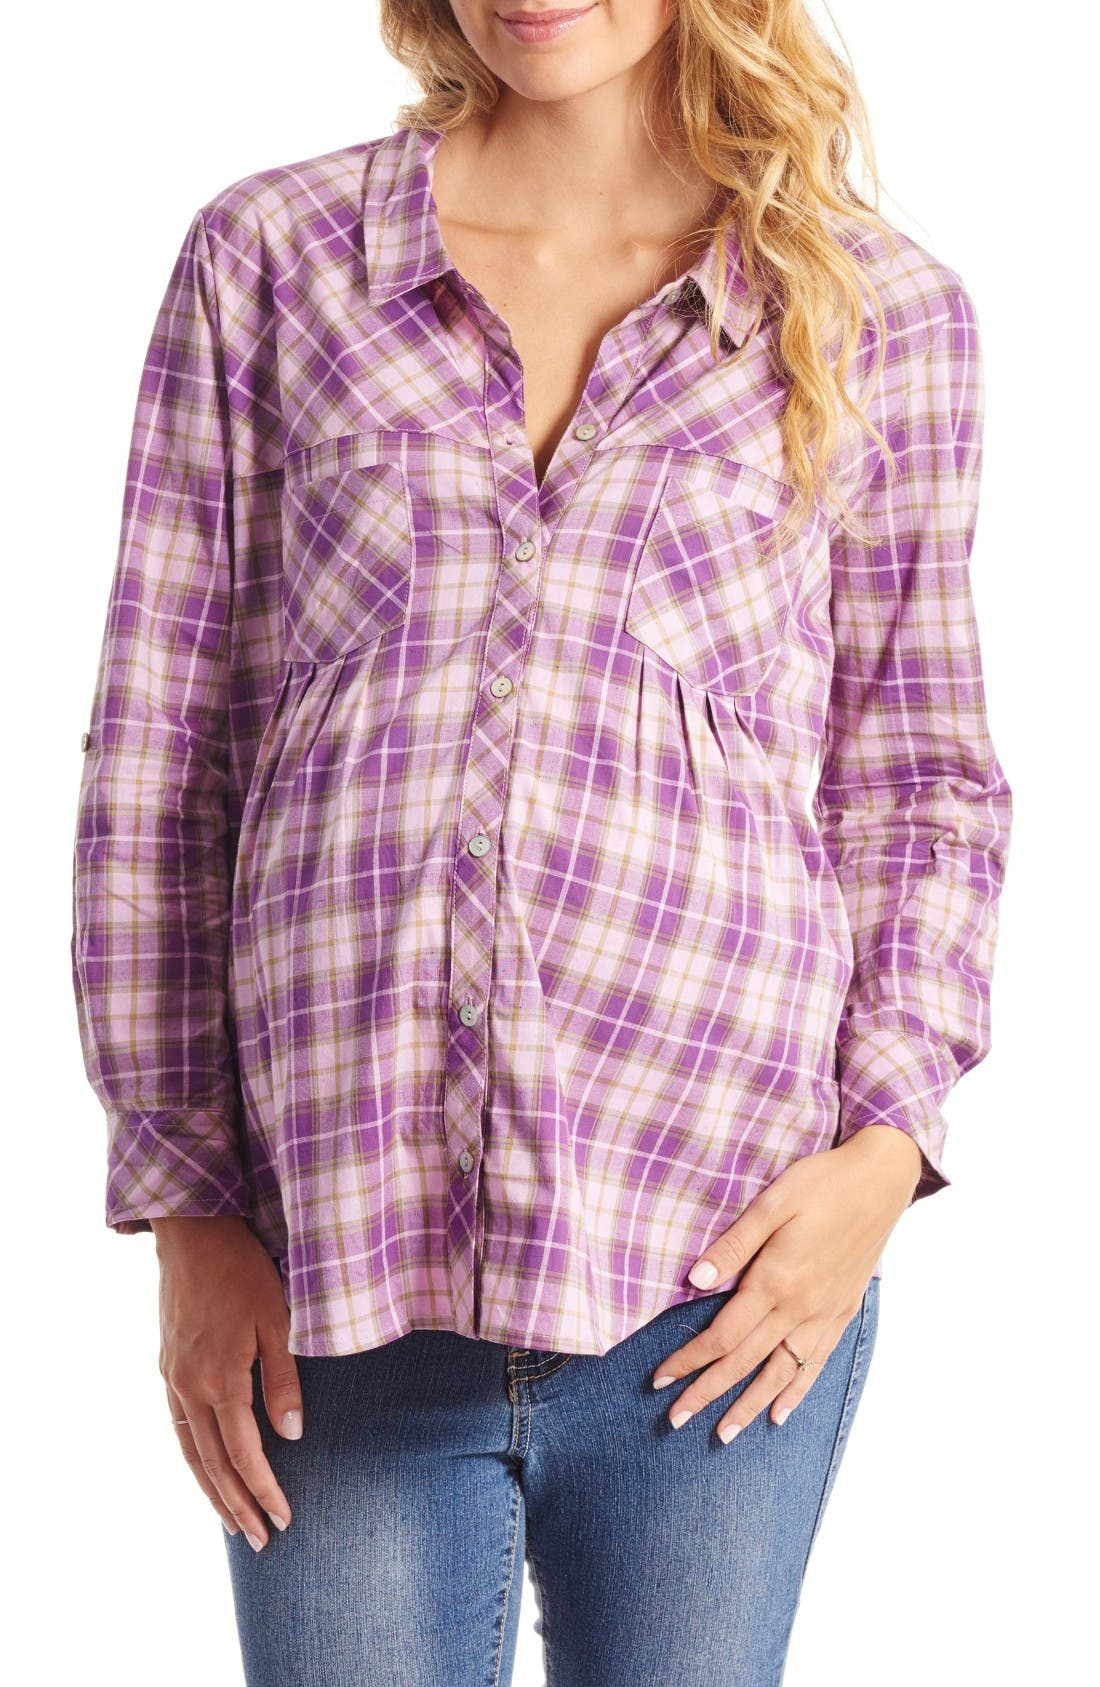 'Batina' Maternity Shirt,                         Main,                         color, Lilac Plaid